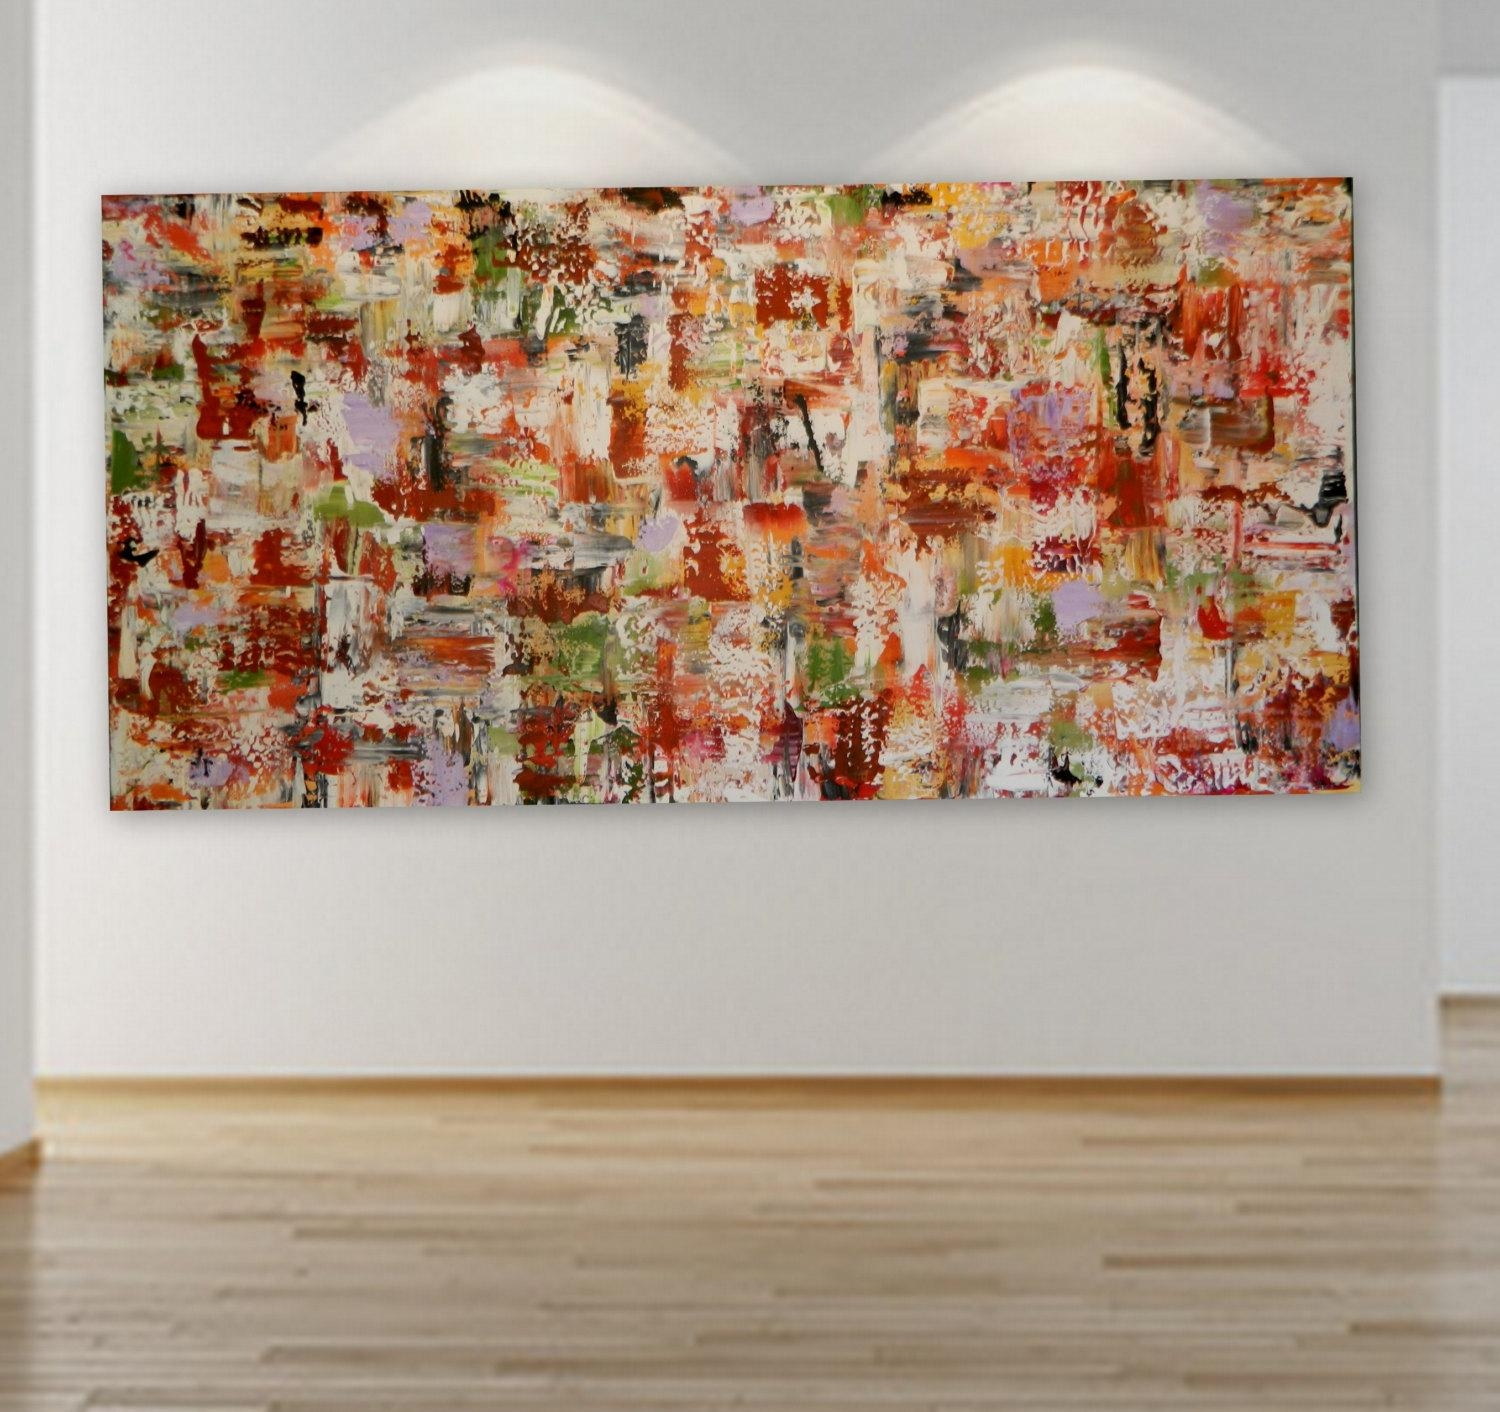 Huge Grande Original Abstract Painting Wall Art Decor Red Yellow Regarding Red And Yellow Wall Art (View 11 of 20)